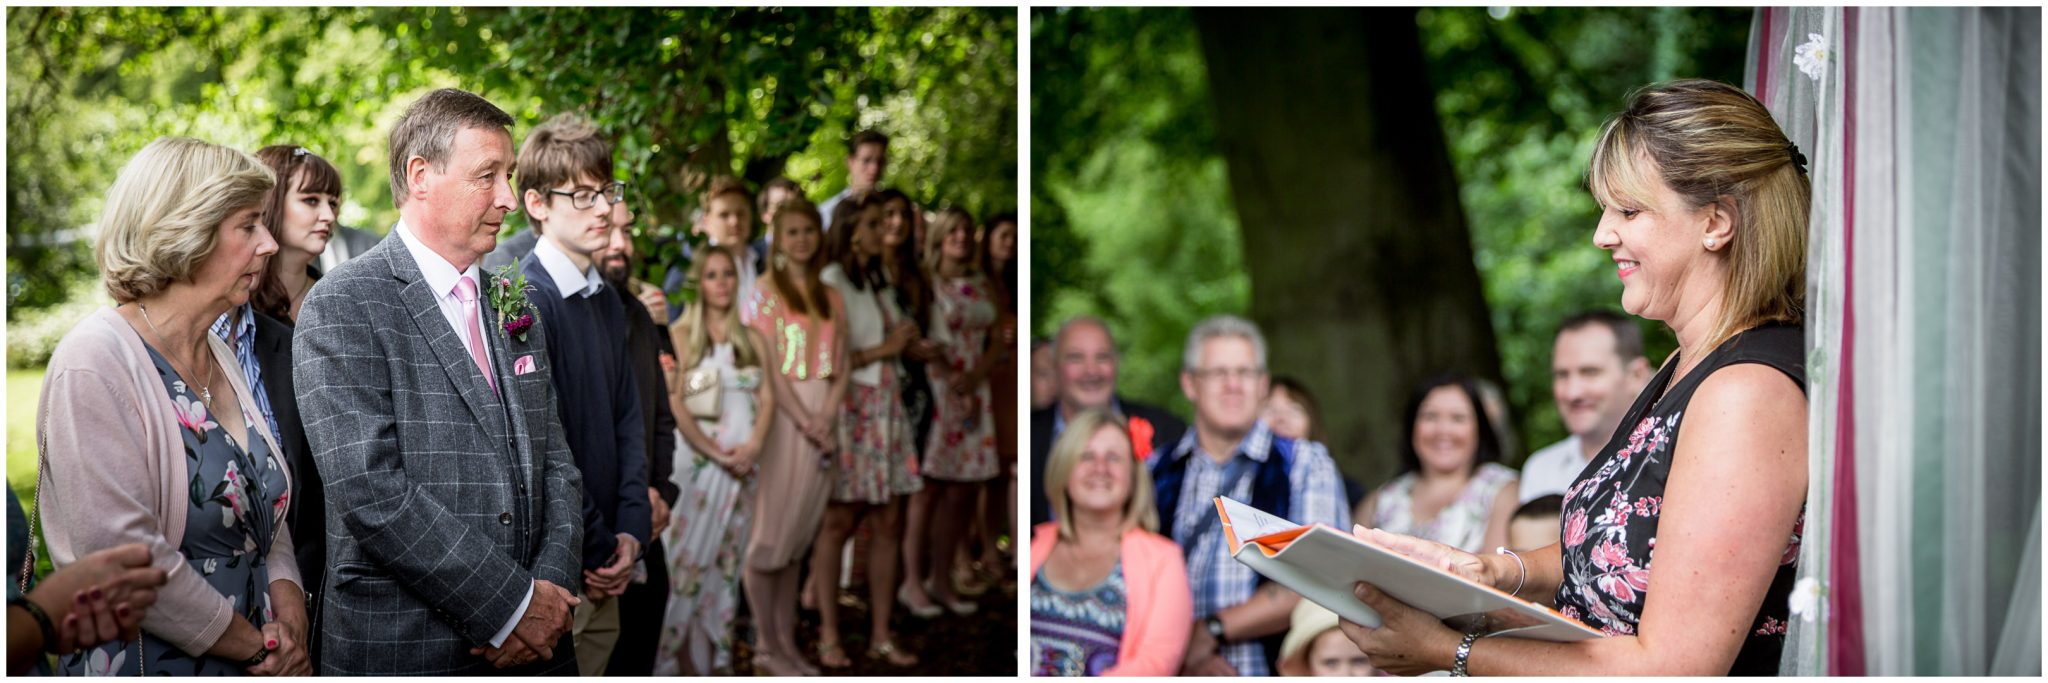 Timsbury Manor Festival Wedding family watch as celebrant leads ceremony